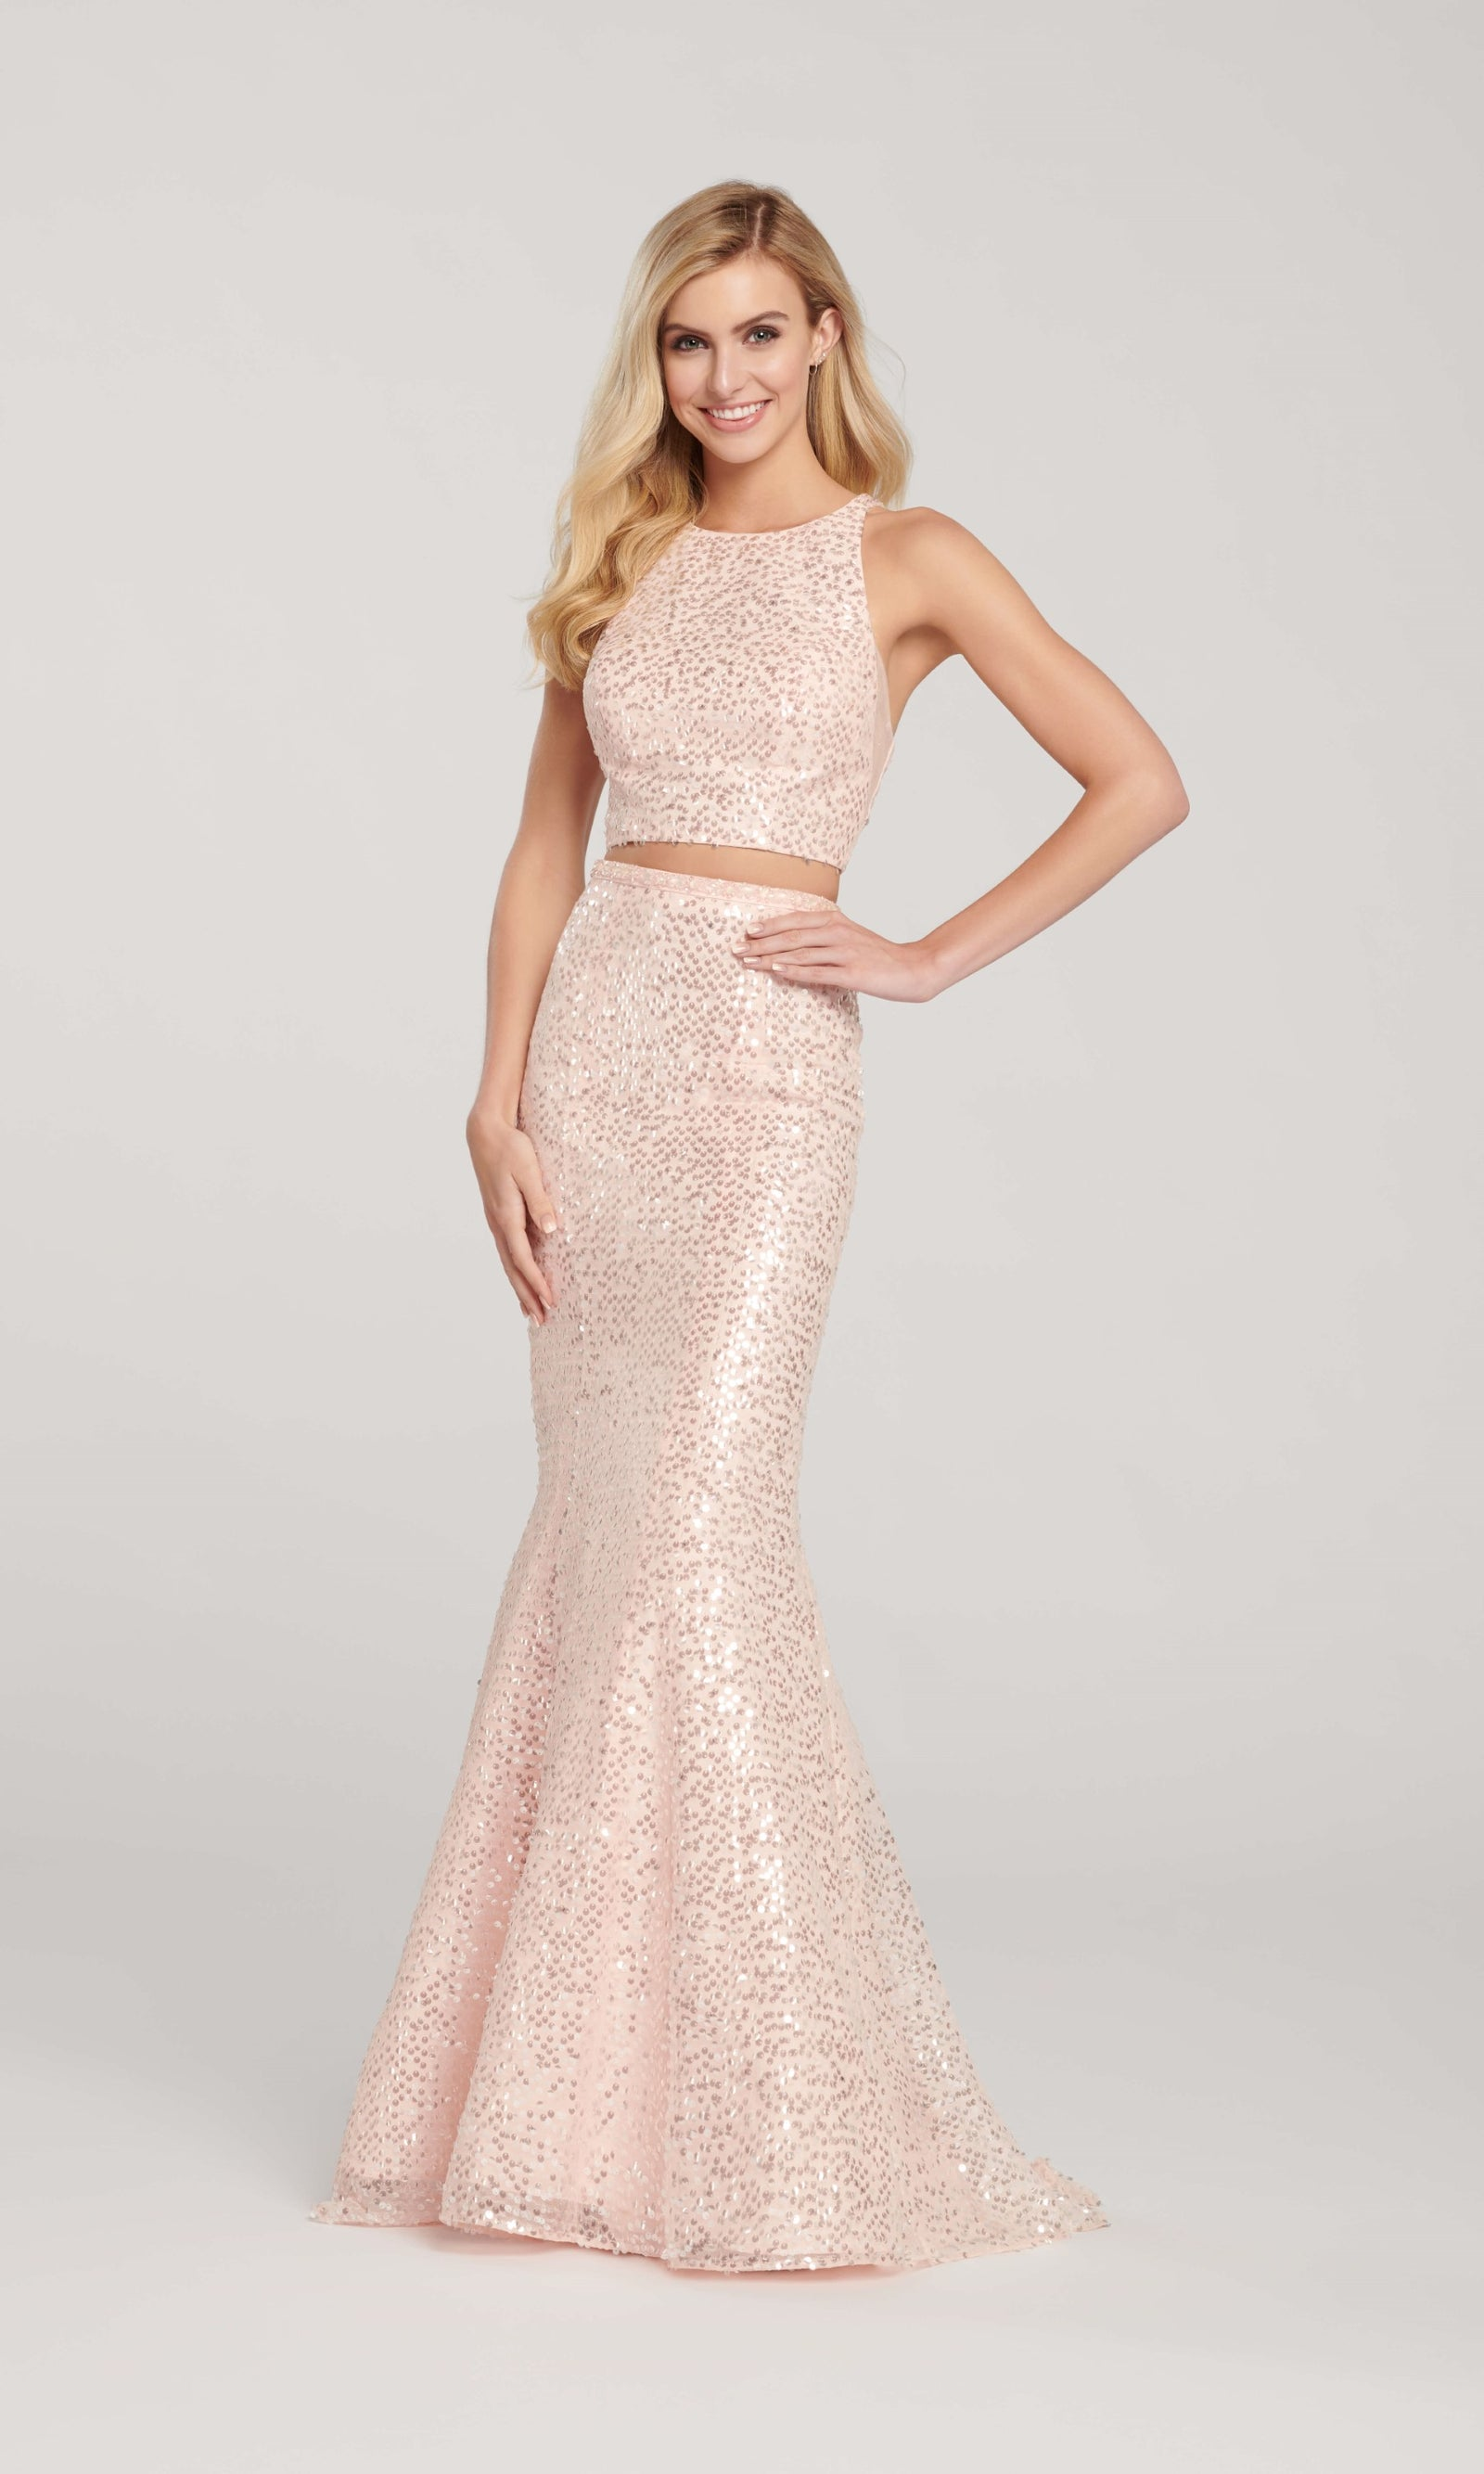 EW119058 Blush Ellie Wilde Two-Piece Sequin Mermaid Dress - Fab Frocks